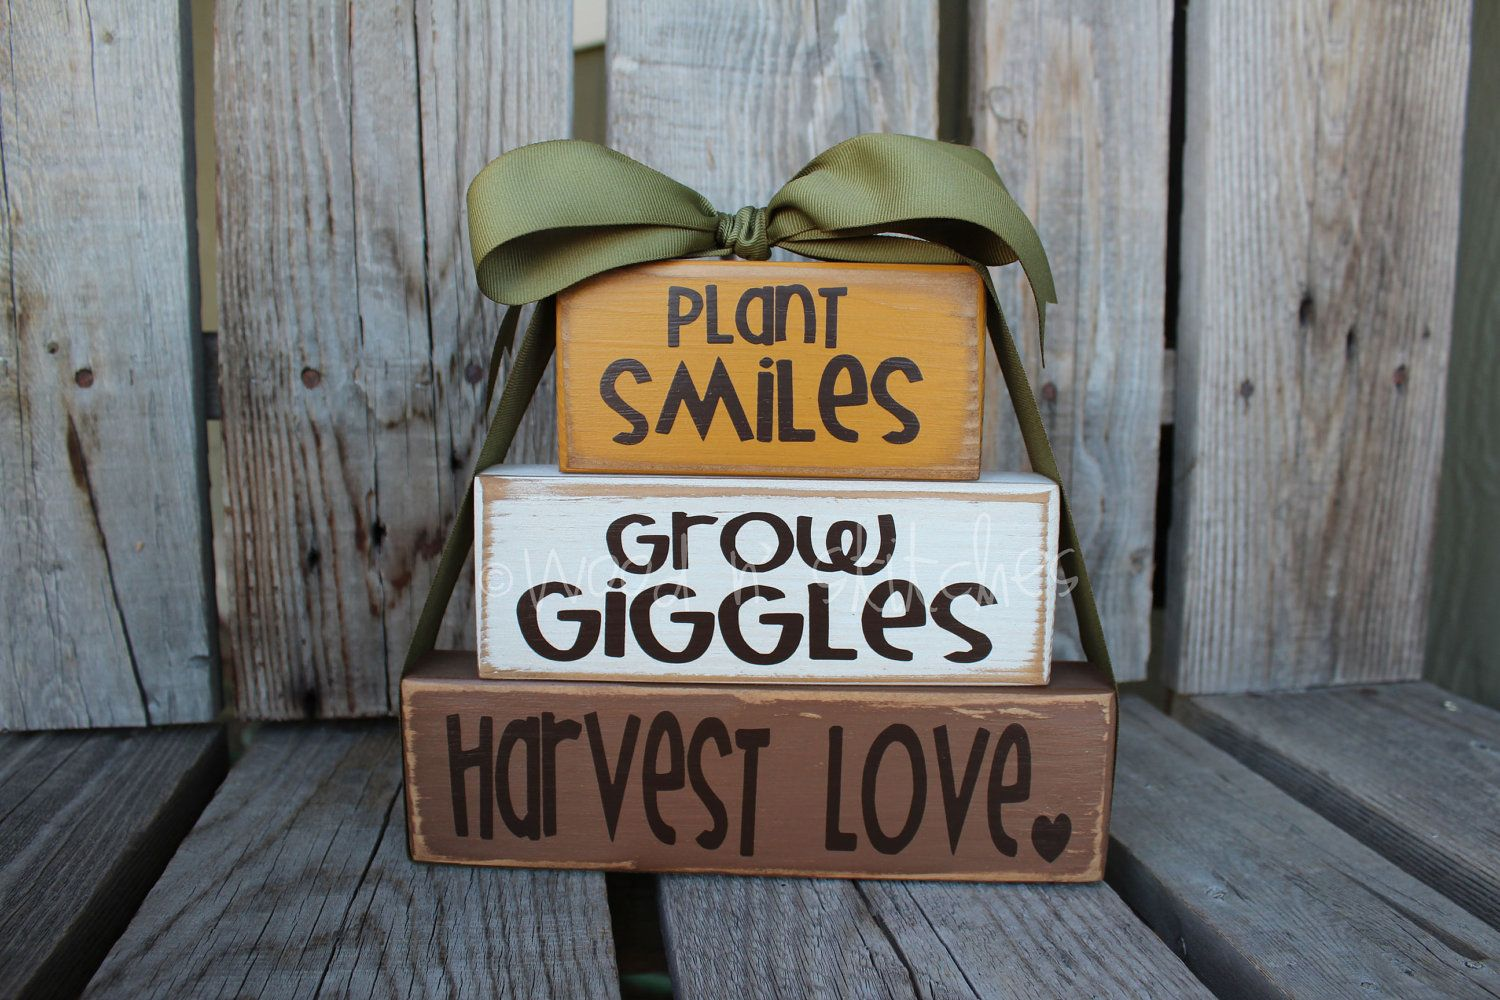 Primitive fall wood crafts - Primitive Autumn Fall Grow Giggles Plant Smiles Harvest Love Wood Block Set Fall Autumn Pumpkin Home